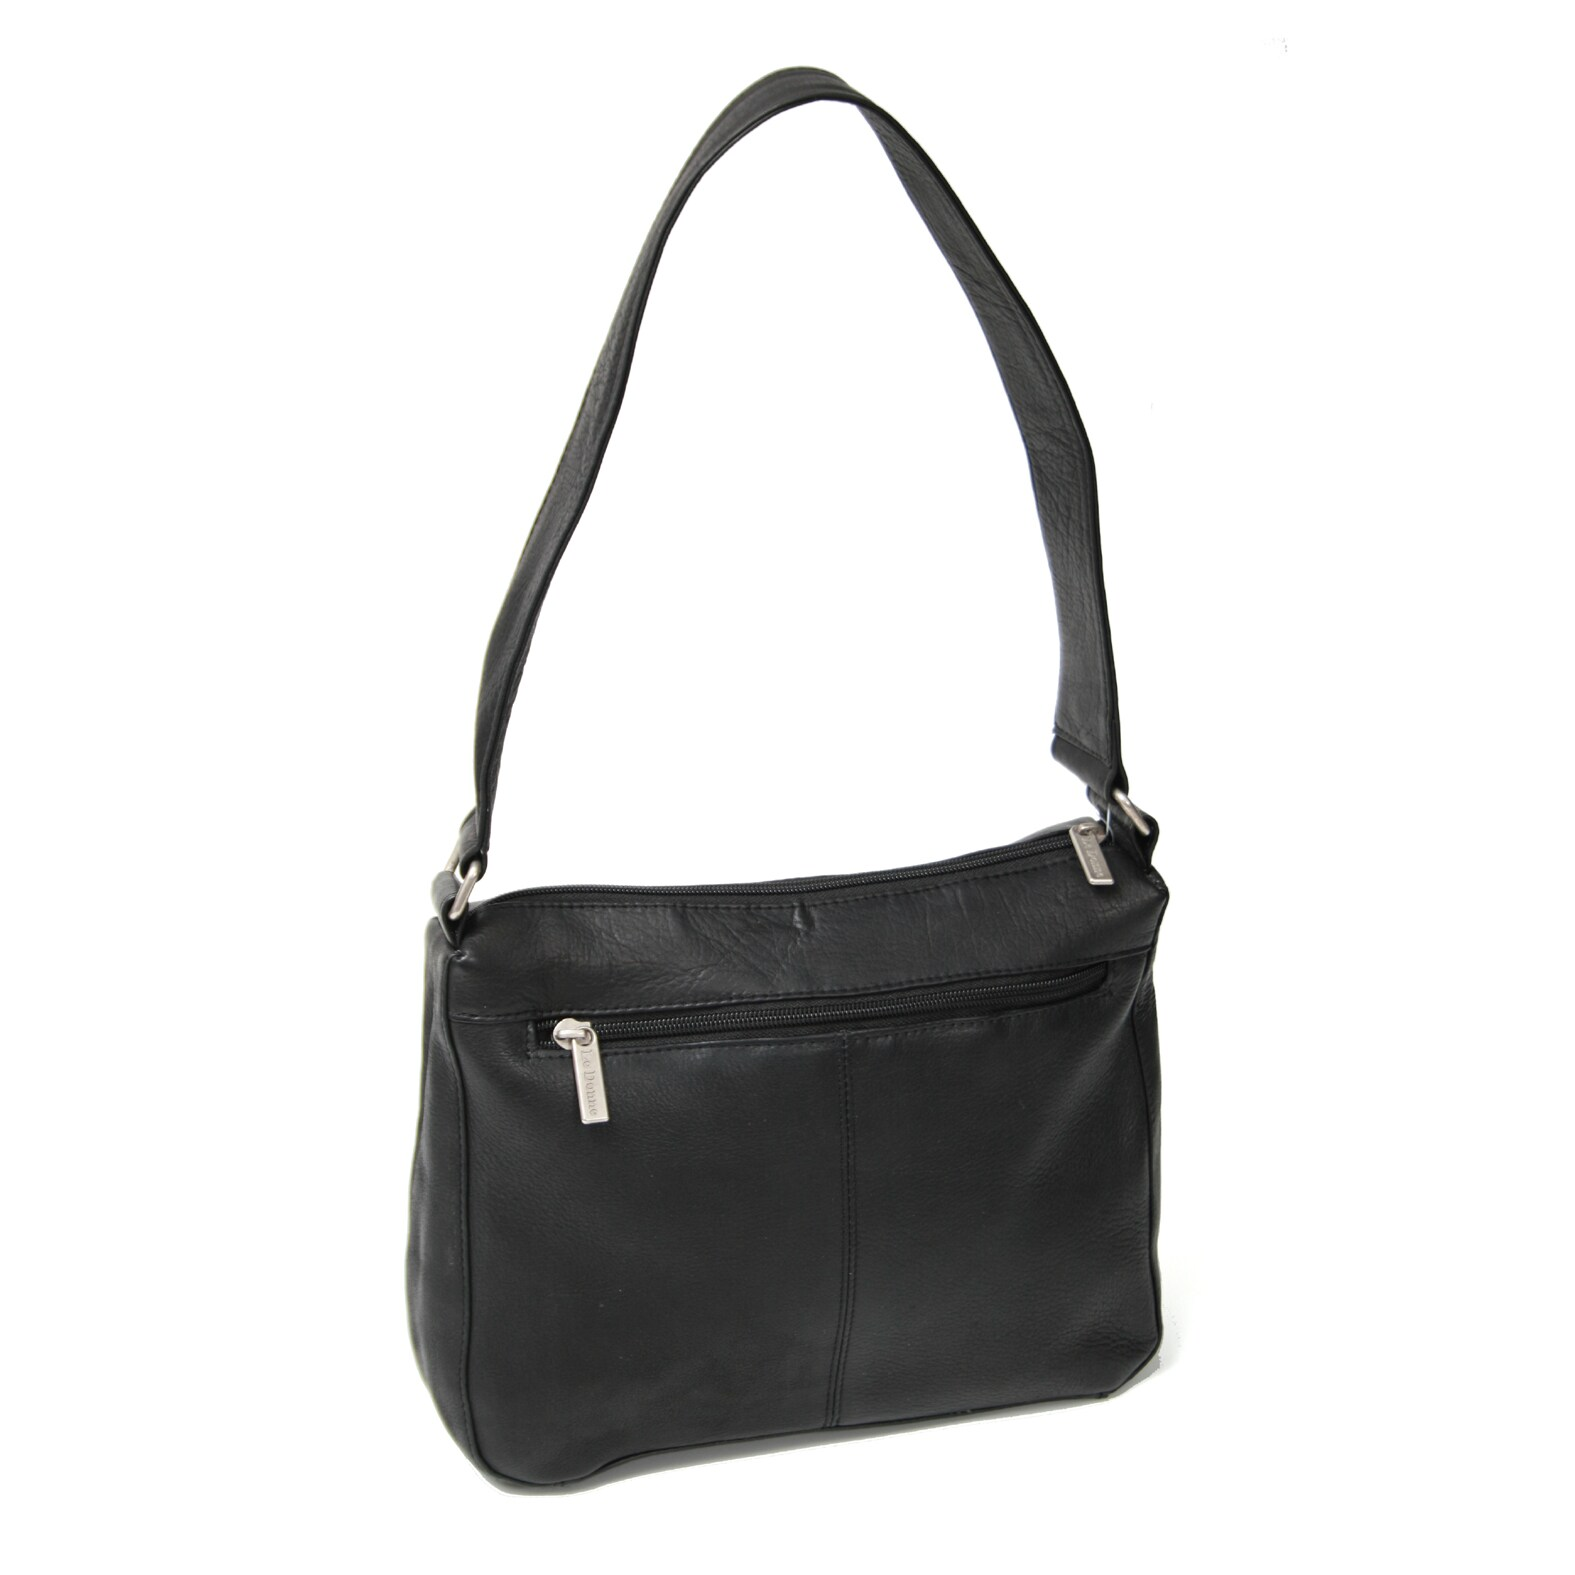 Royce Leather Women's Black Vaquetta Travel Bag